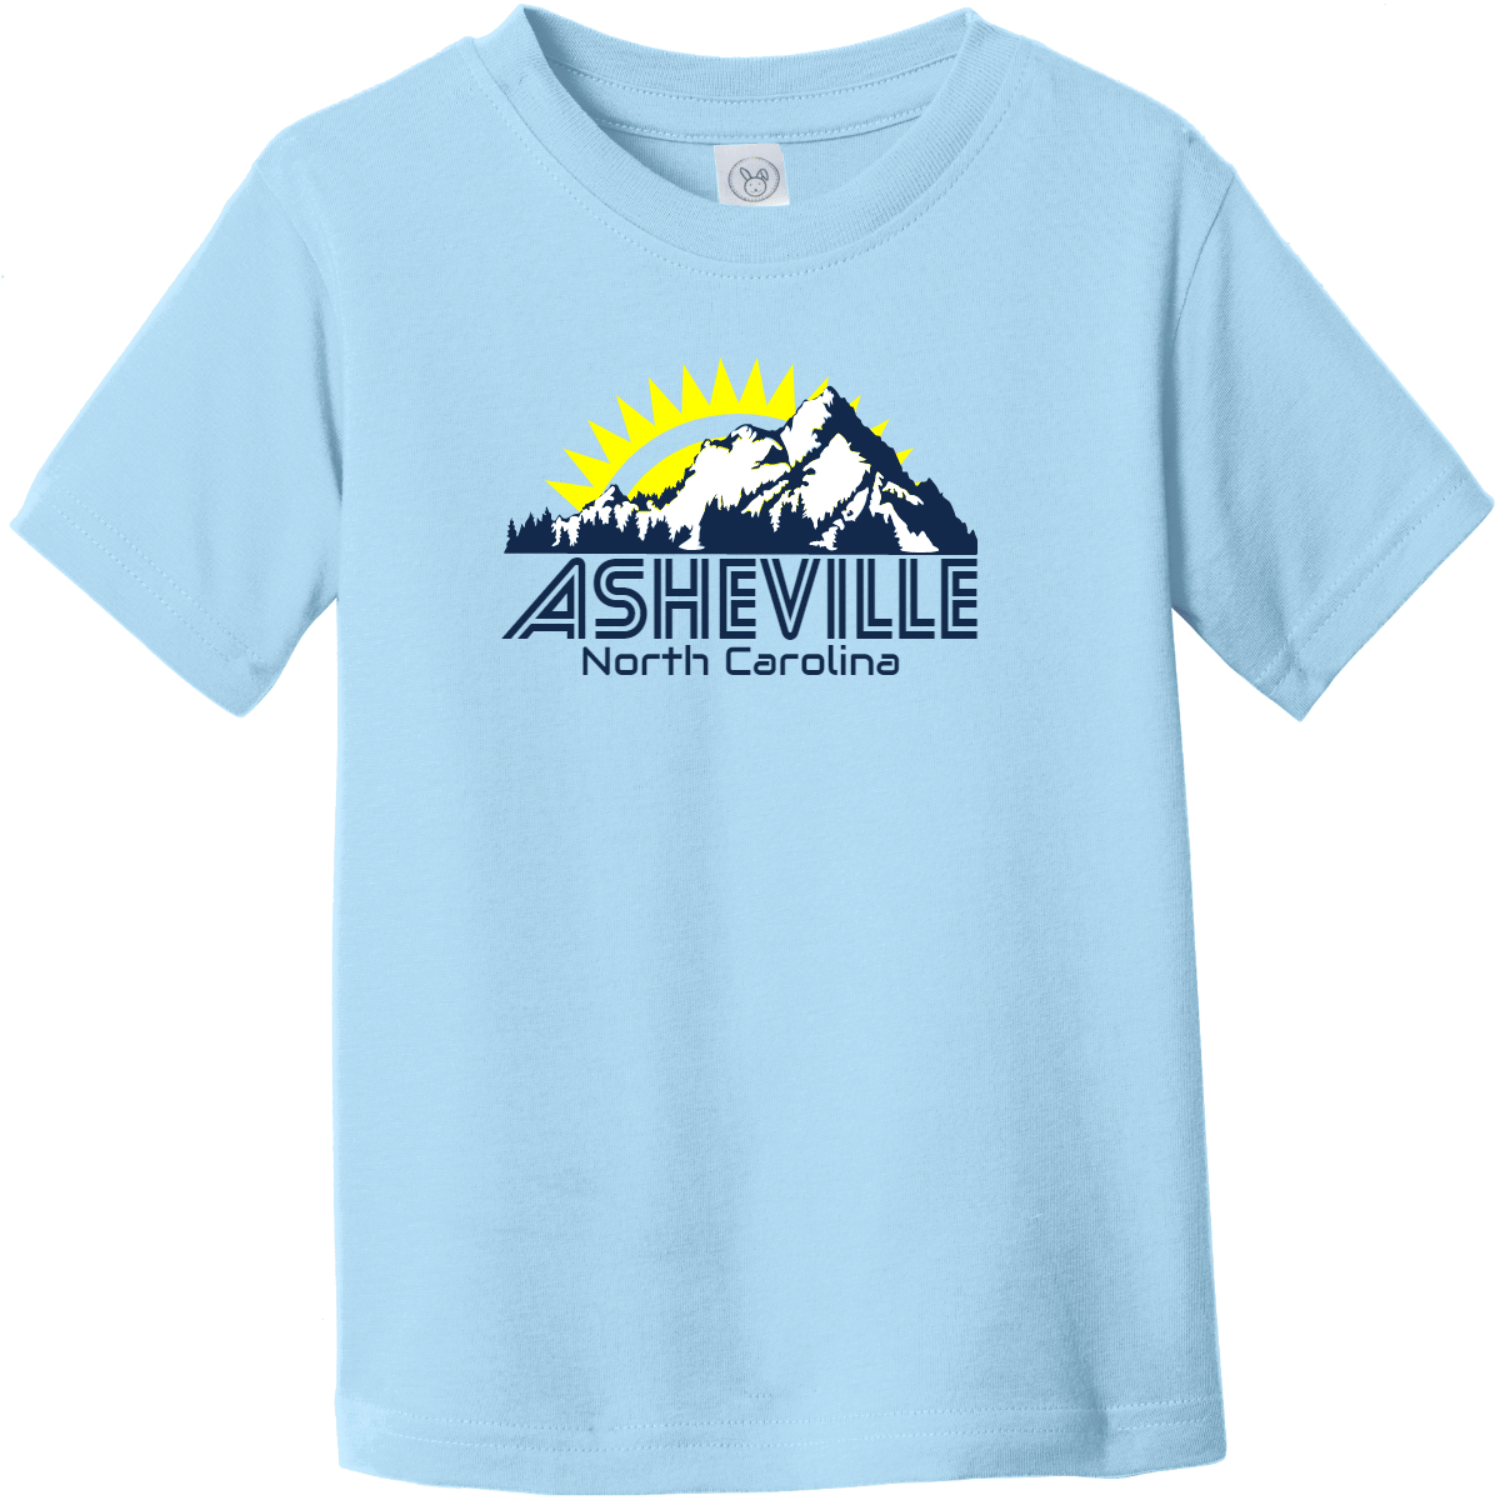 Asheville North Carolina Mountains Toddler T Shirt Light Blue Rabbit Skins Toddler Fine Jersey Tee RS3321